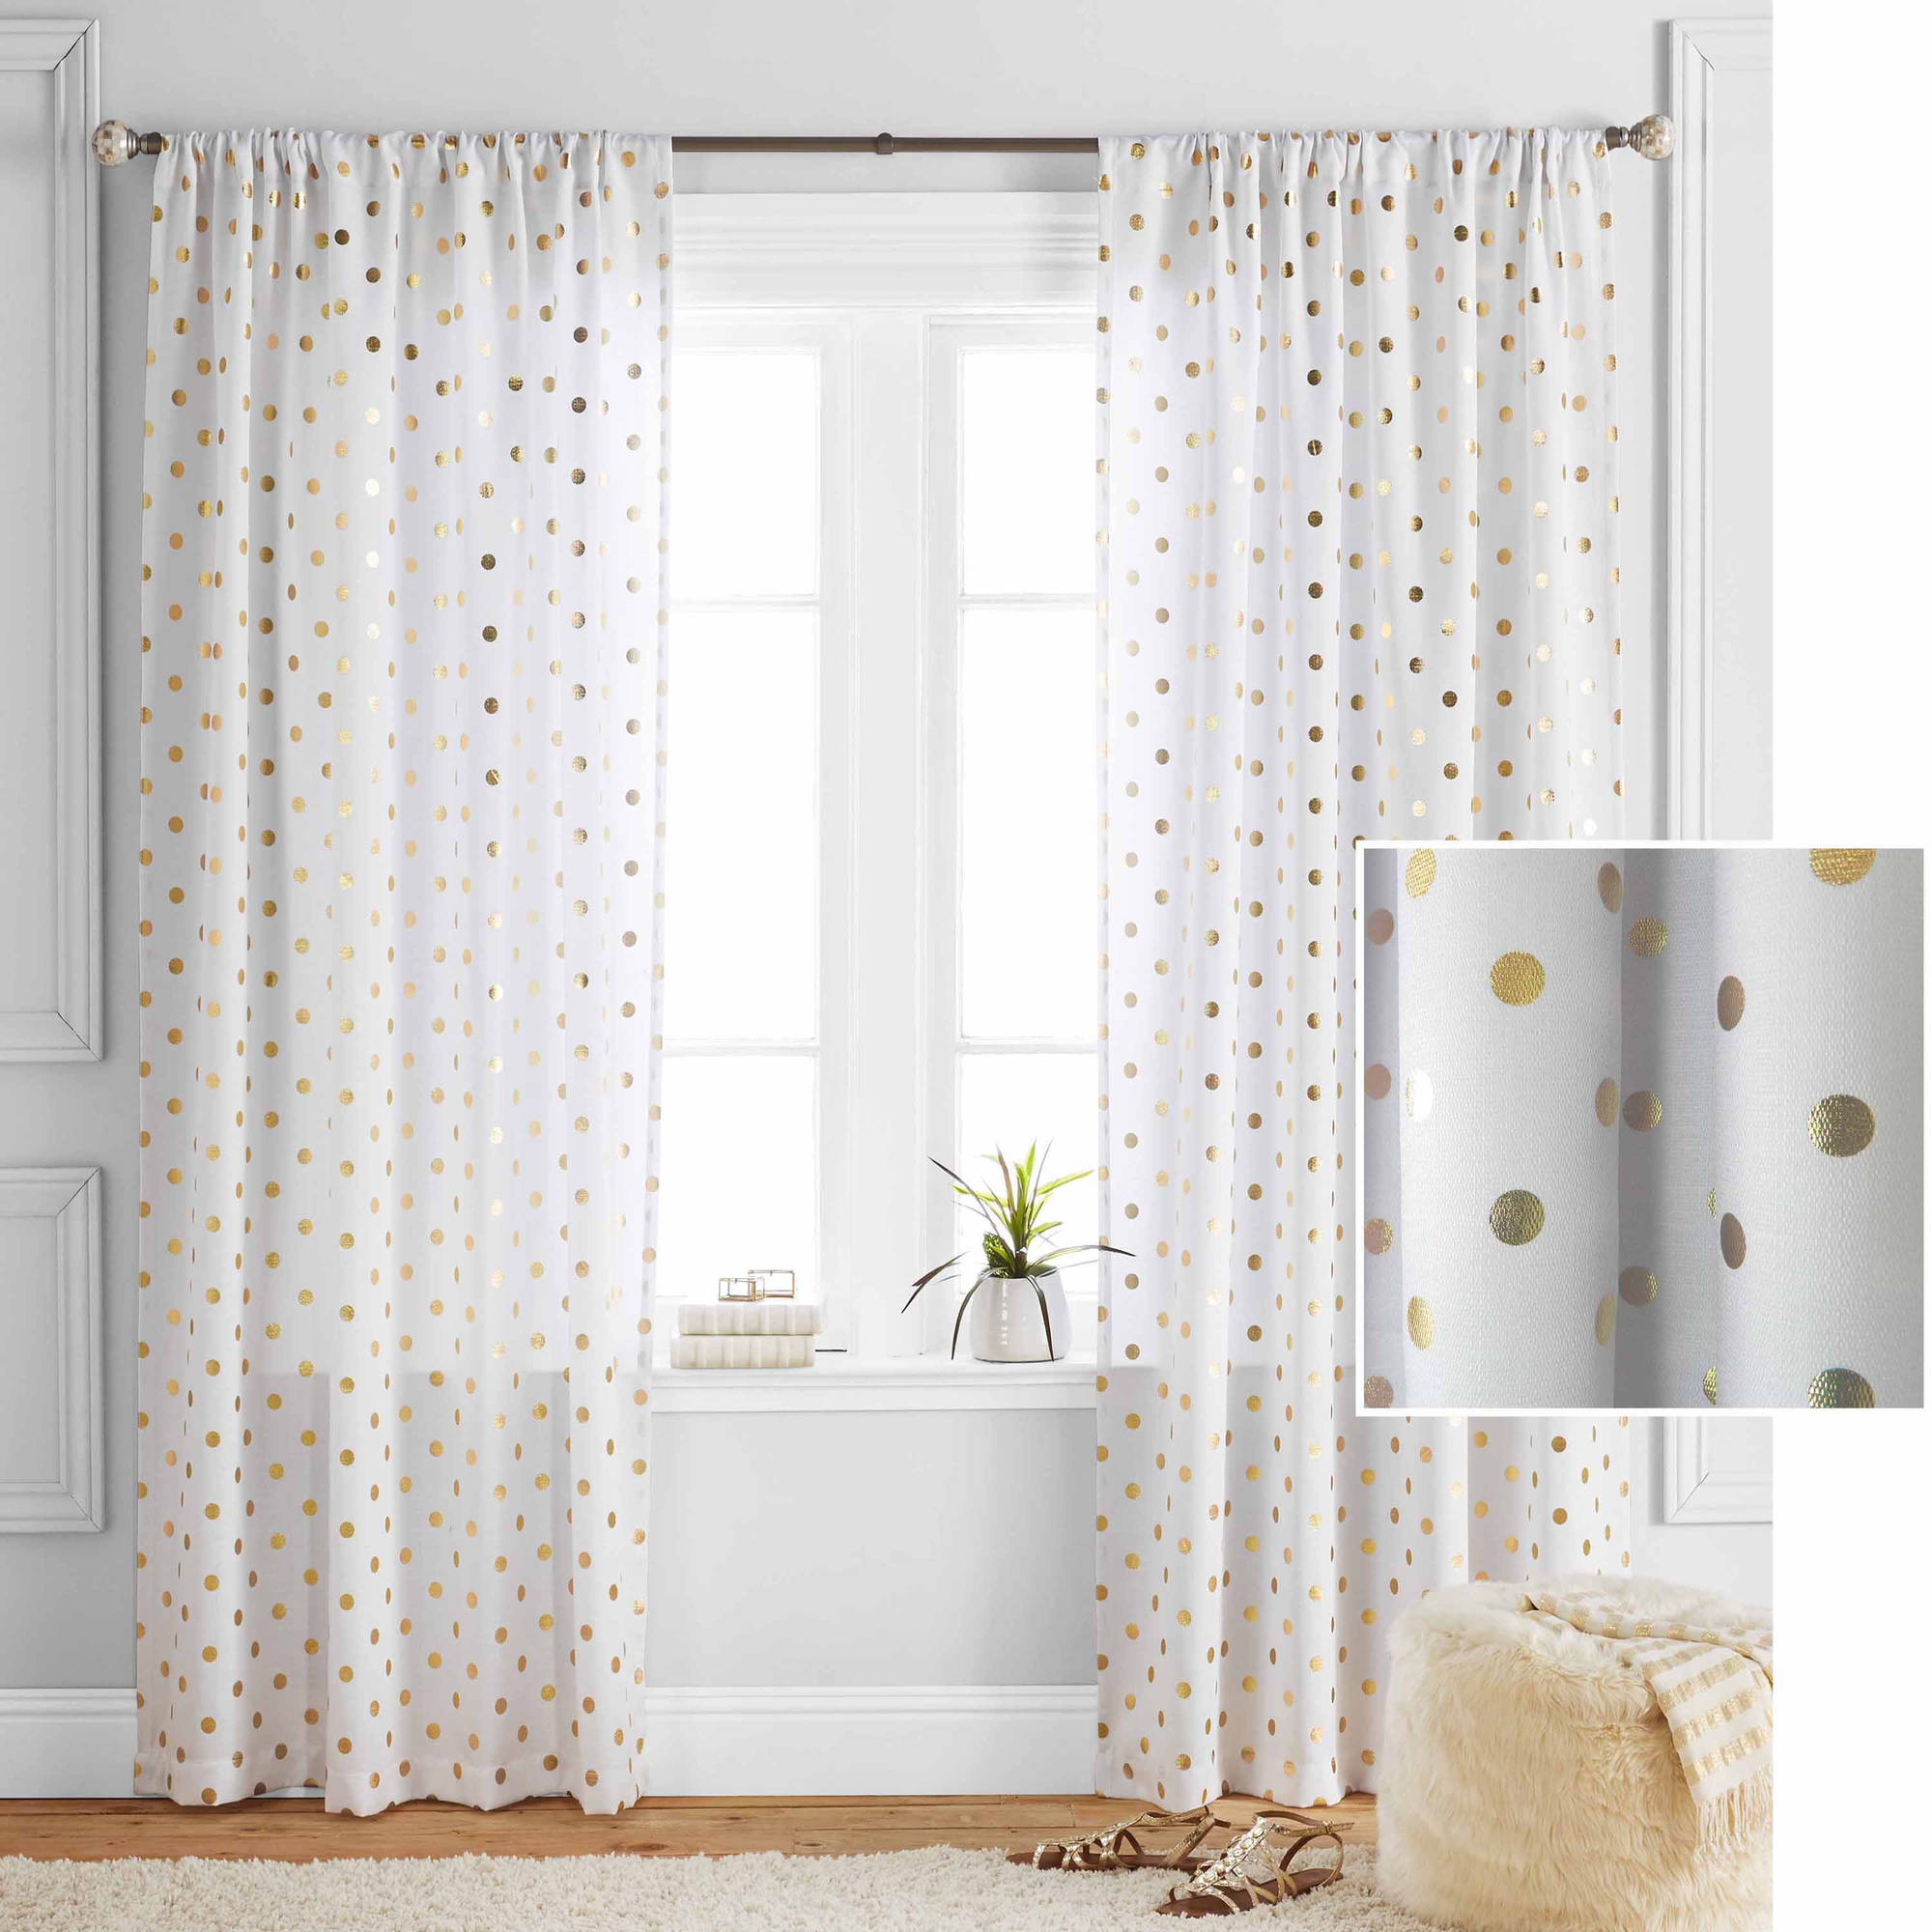 Better Homes And Gardens Polka Dots Curtain Panel